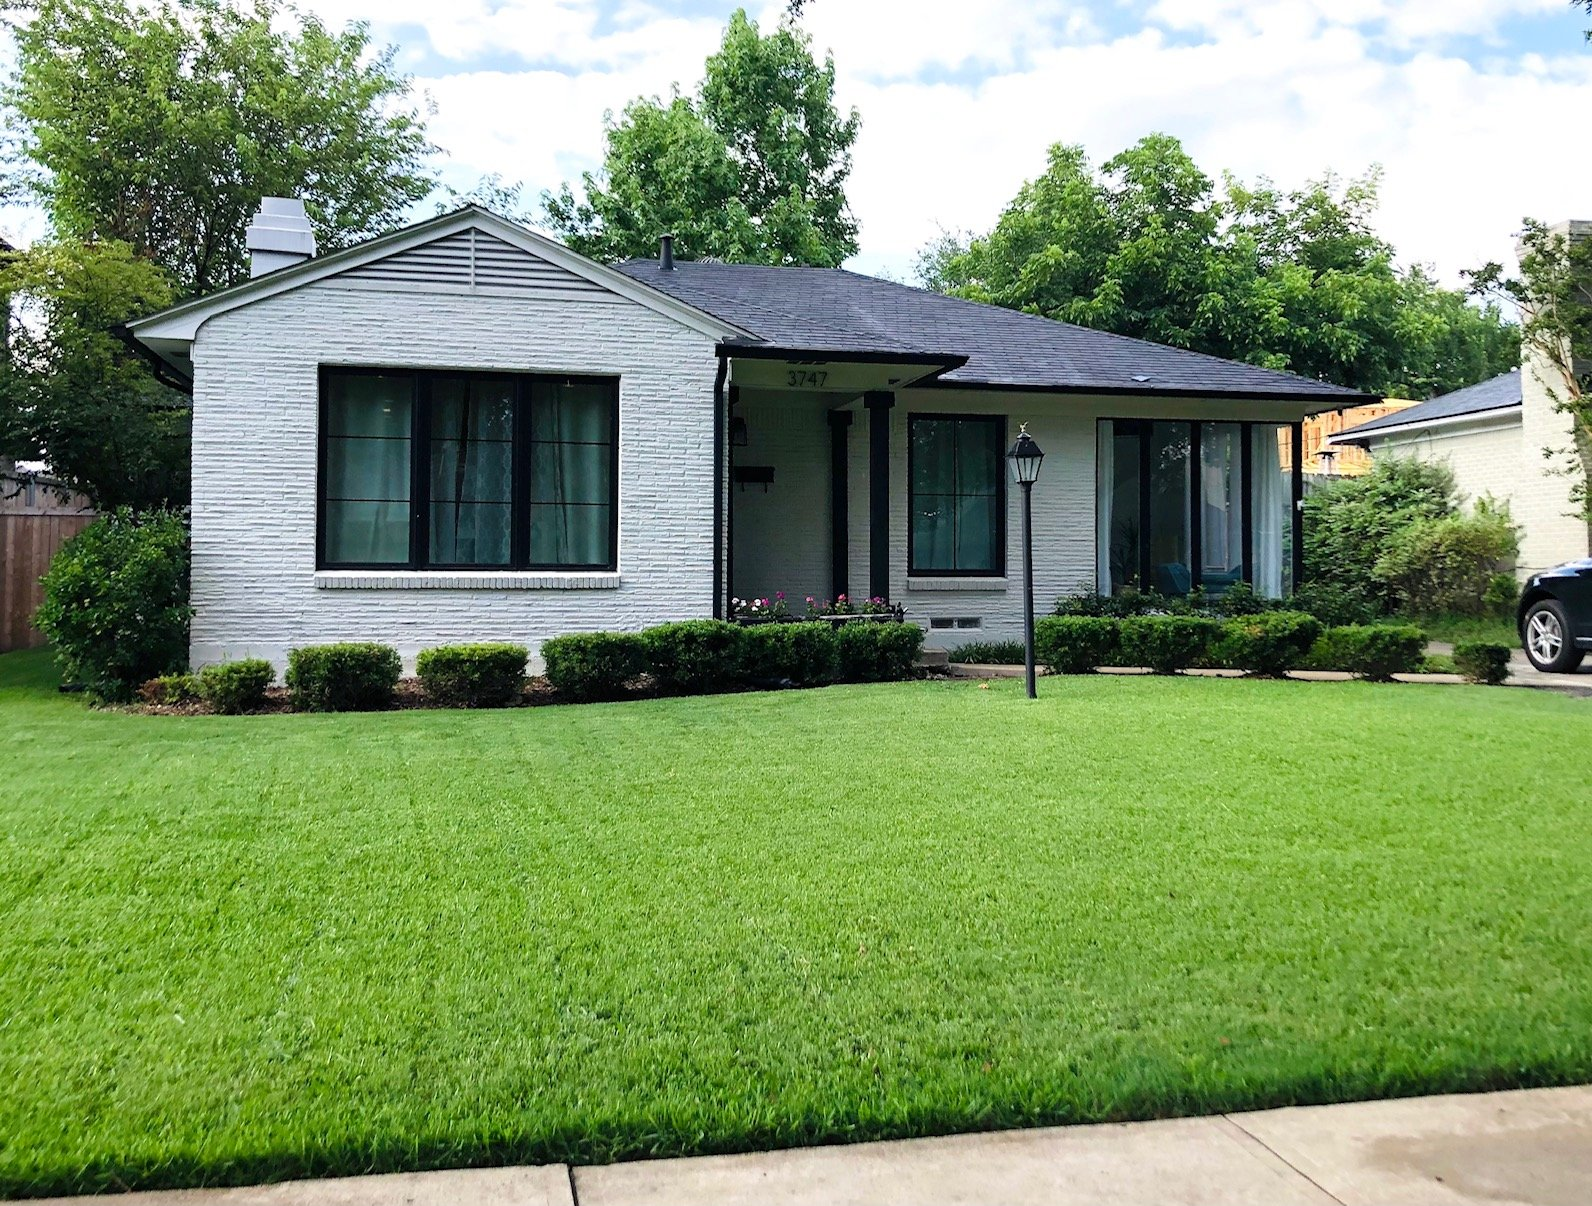 Midway Hollow Dallas Lawn Care